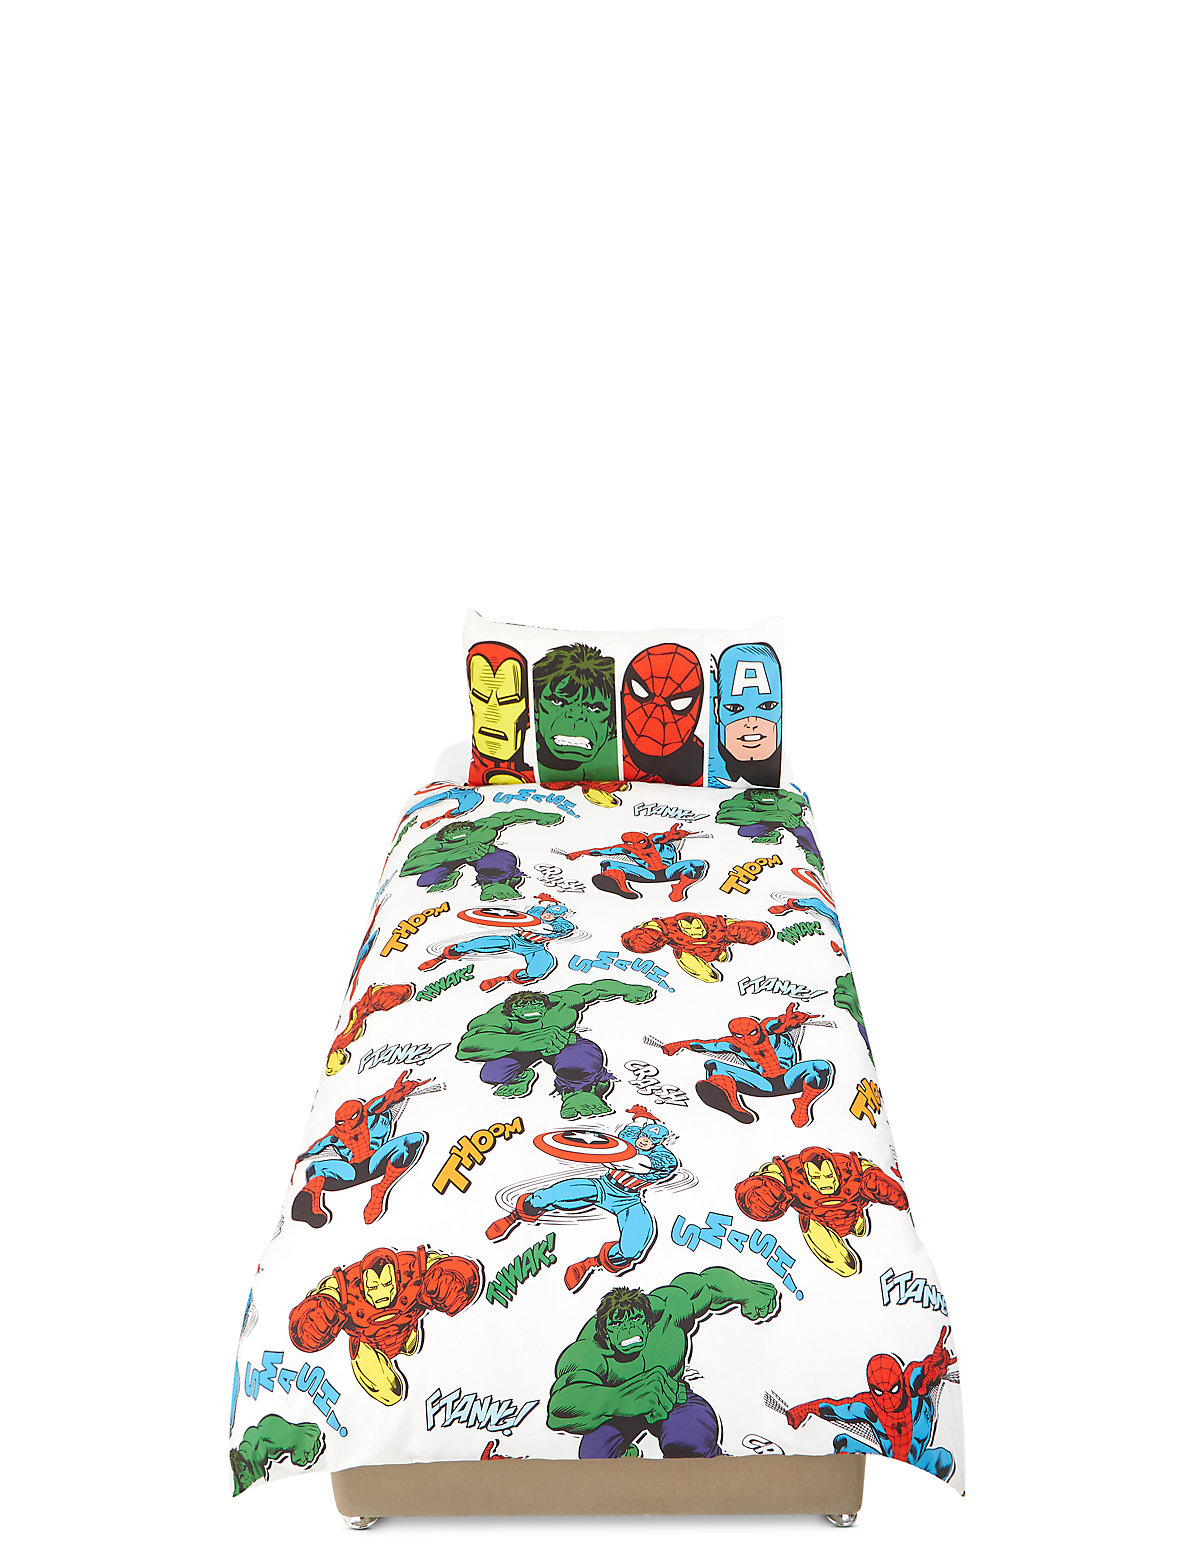 Avengers 2 Bedding Set Gay Times Uk 163 29 50